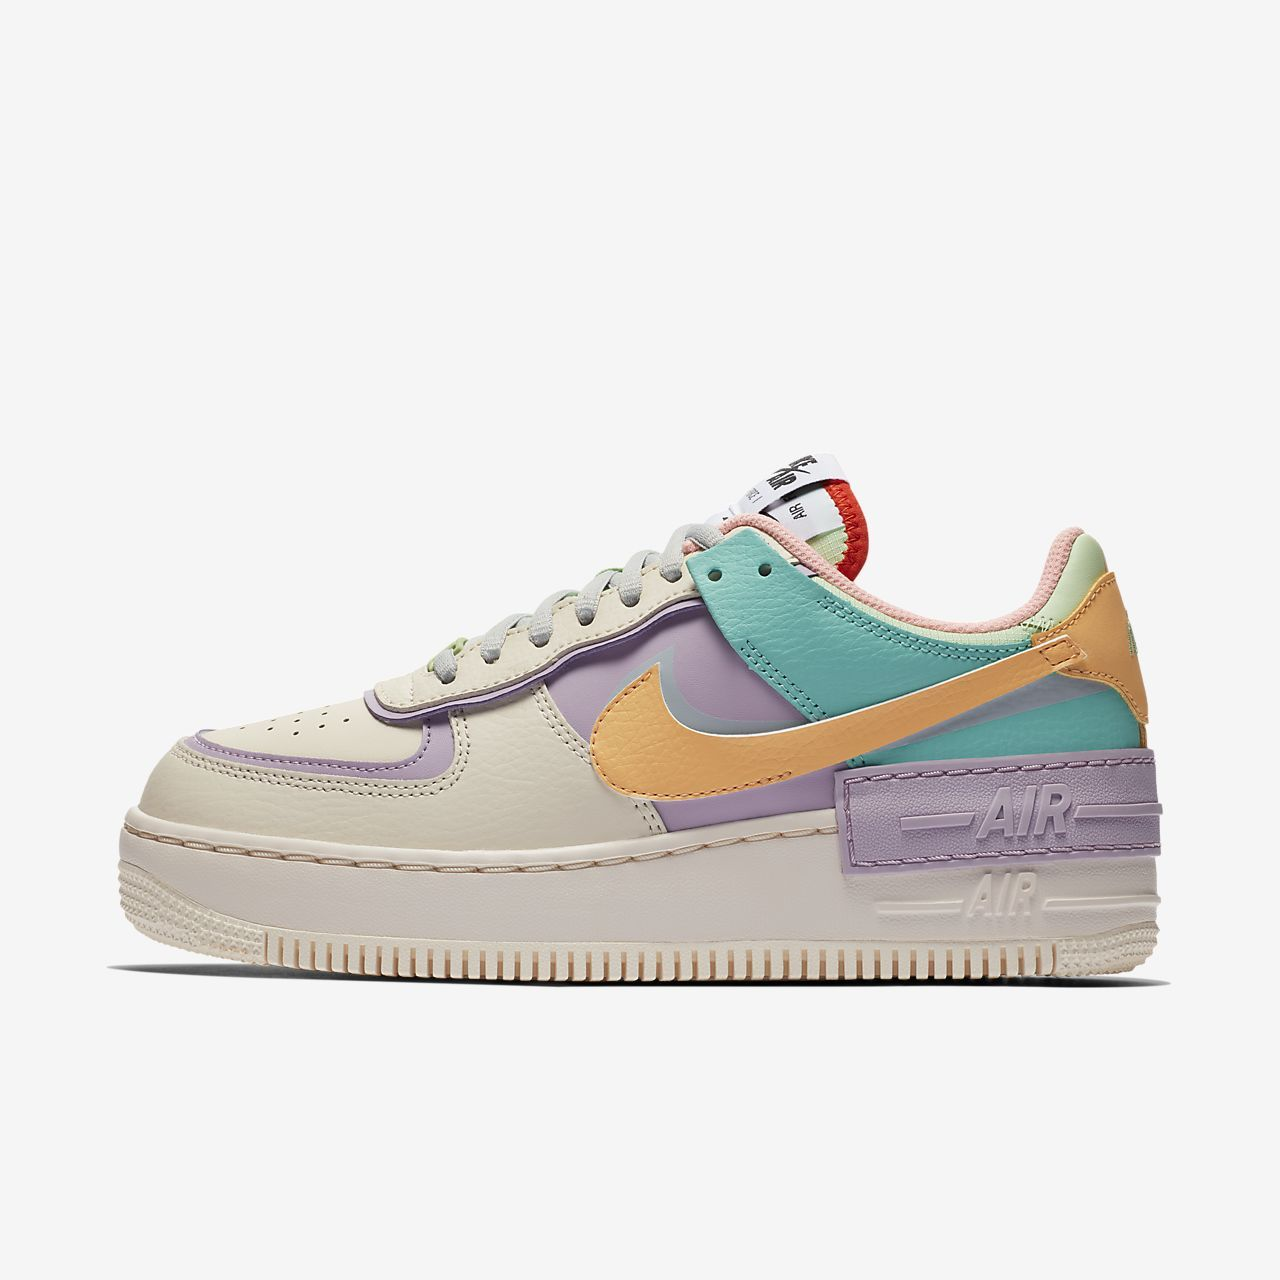 Air Force 1 Shadow Women's Shoe en 2020 | Zapatos nike ...